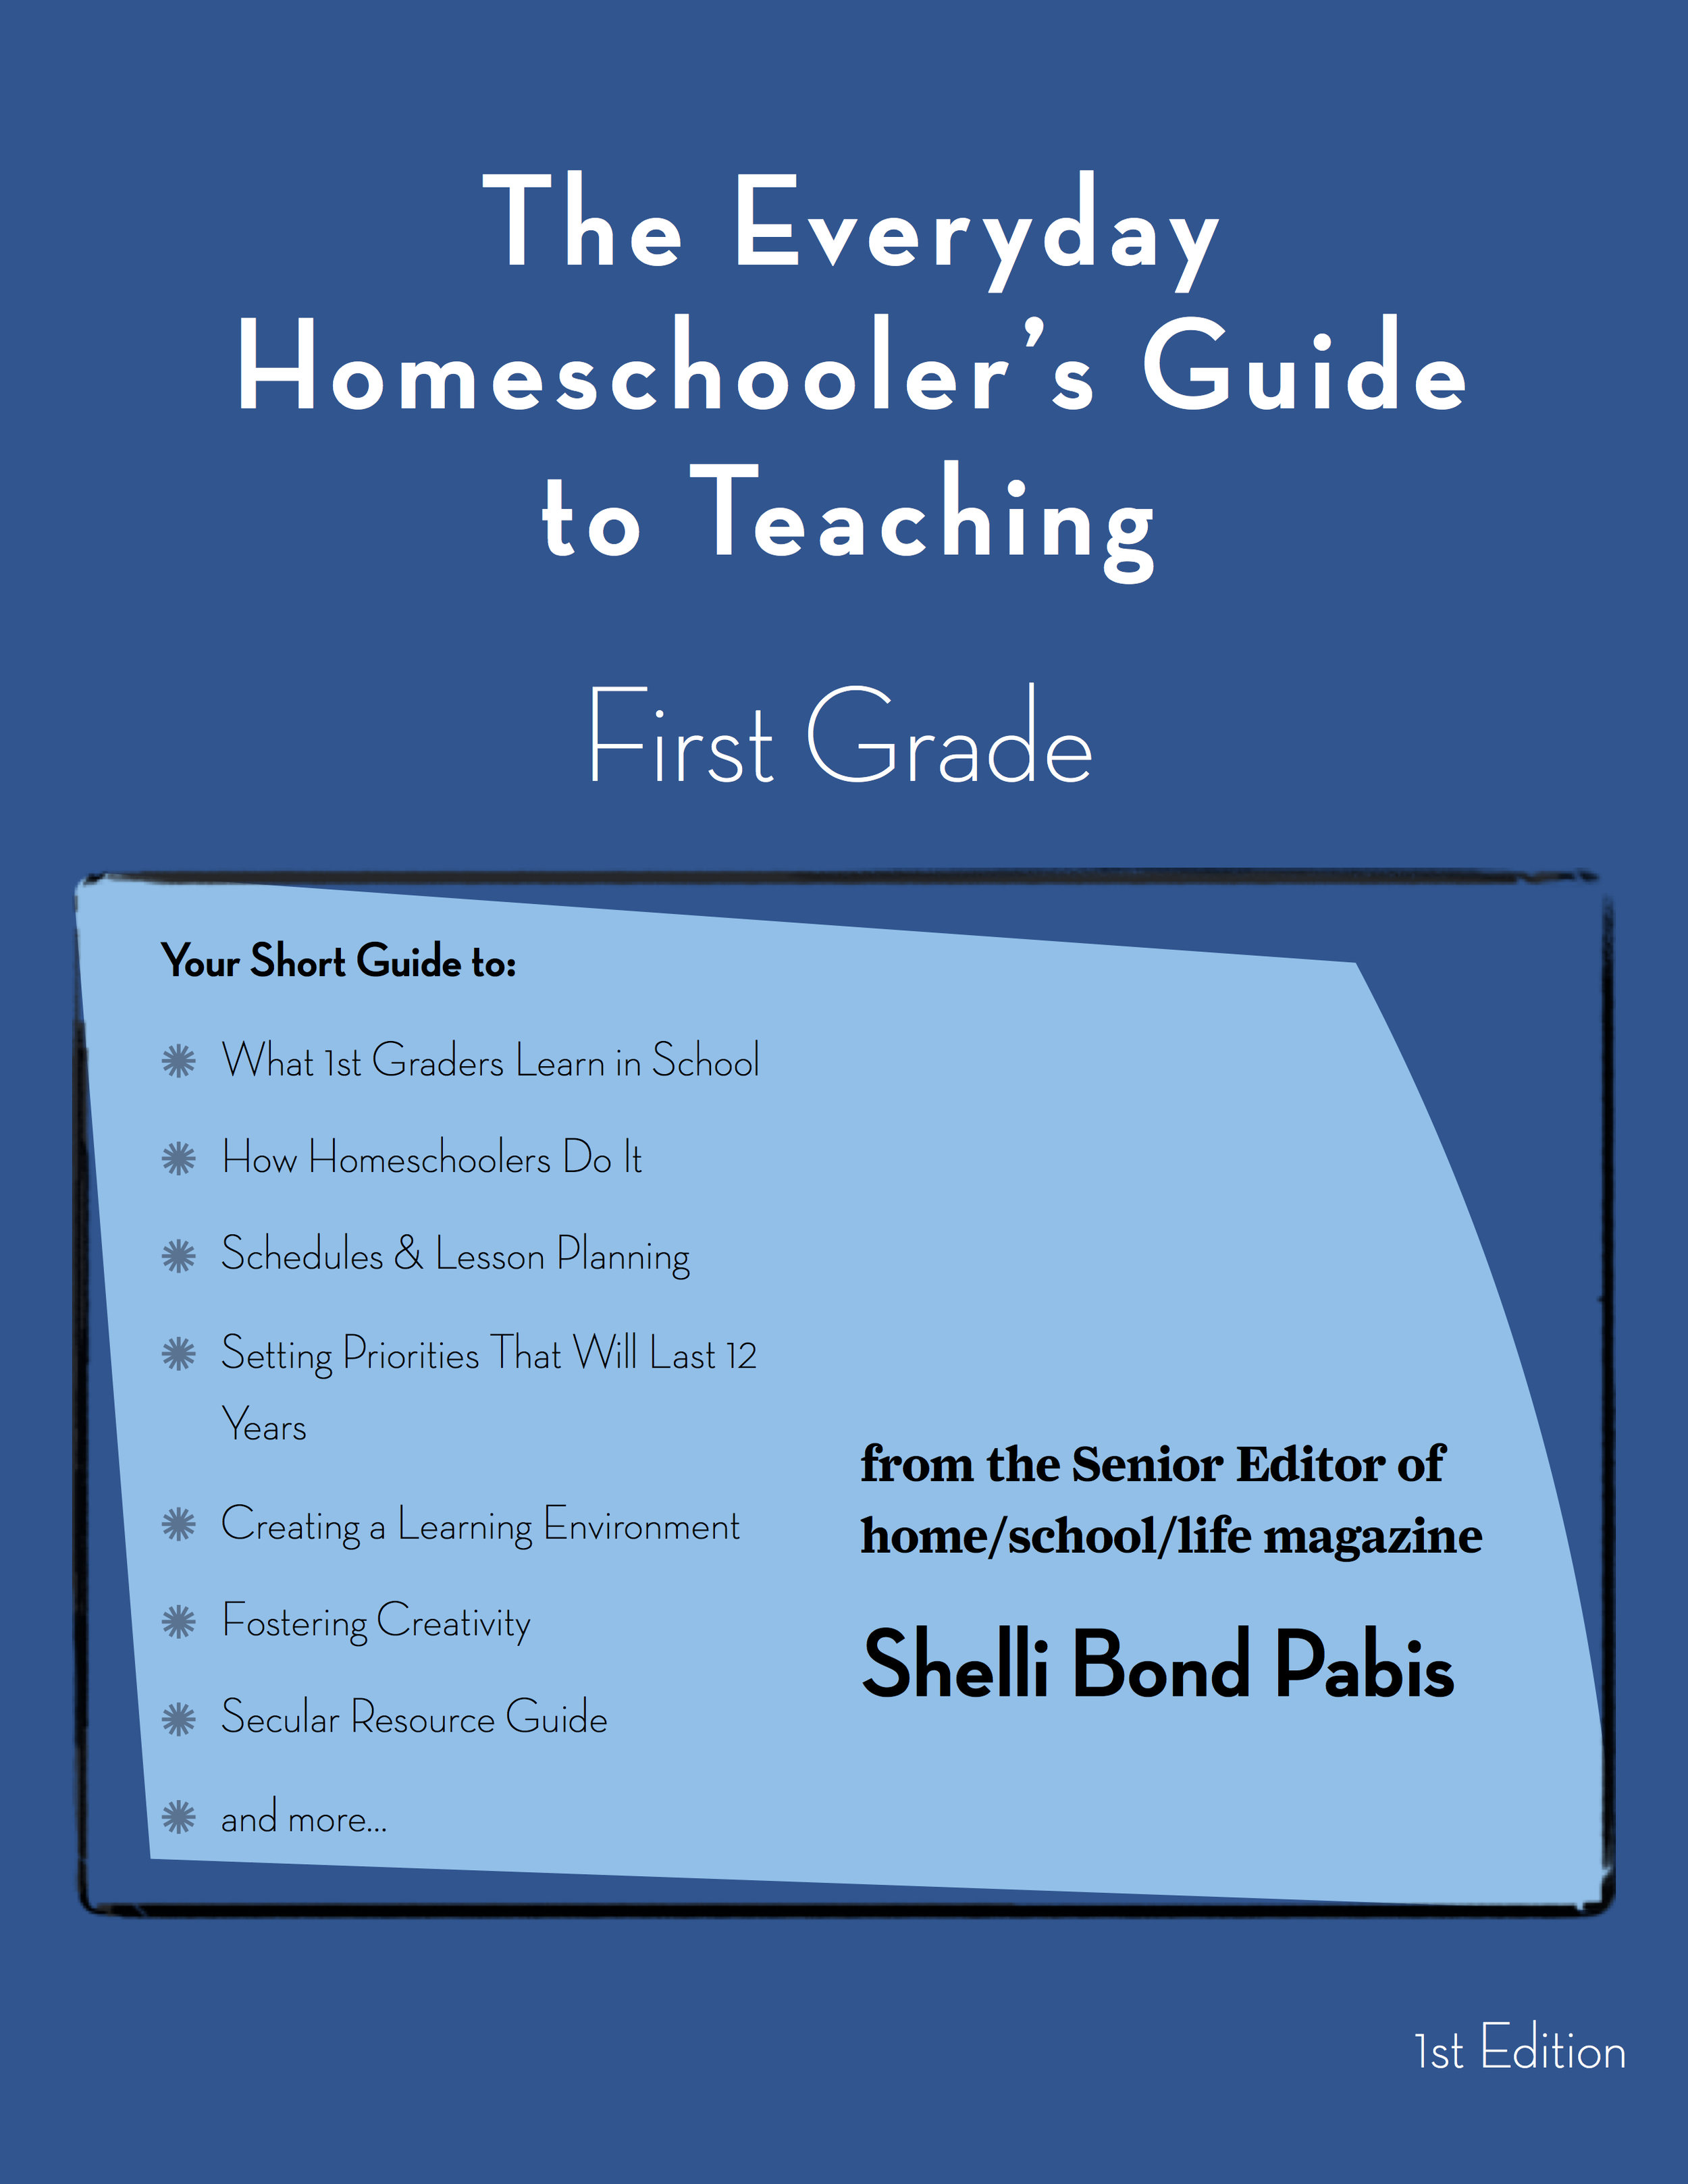 New Resource: Your Guide to Homeschooling 1st Grade by Shelli Bond Pabis